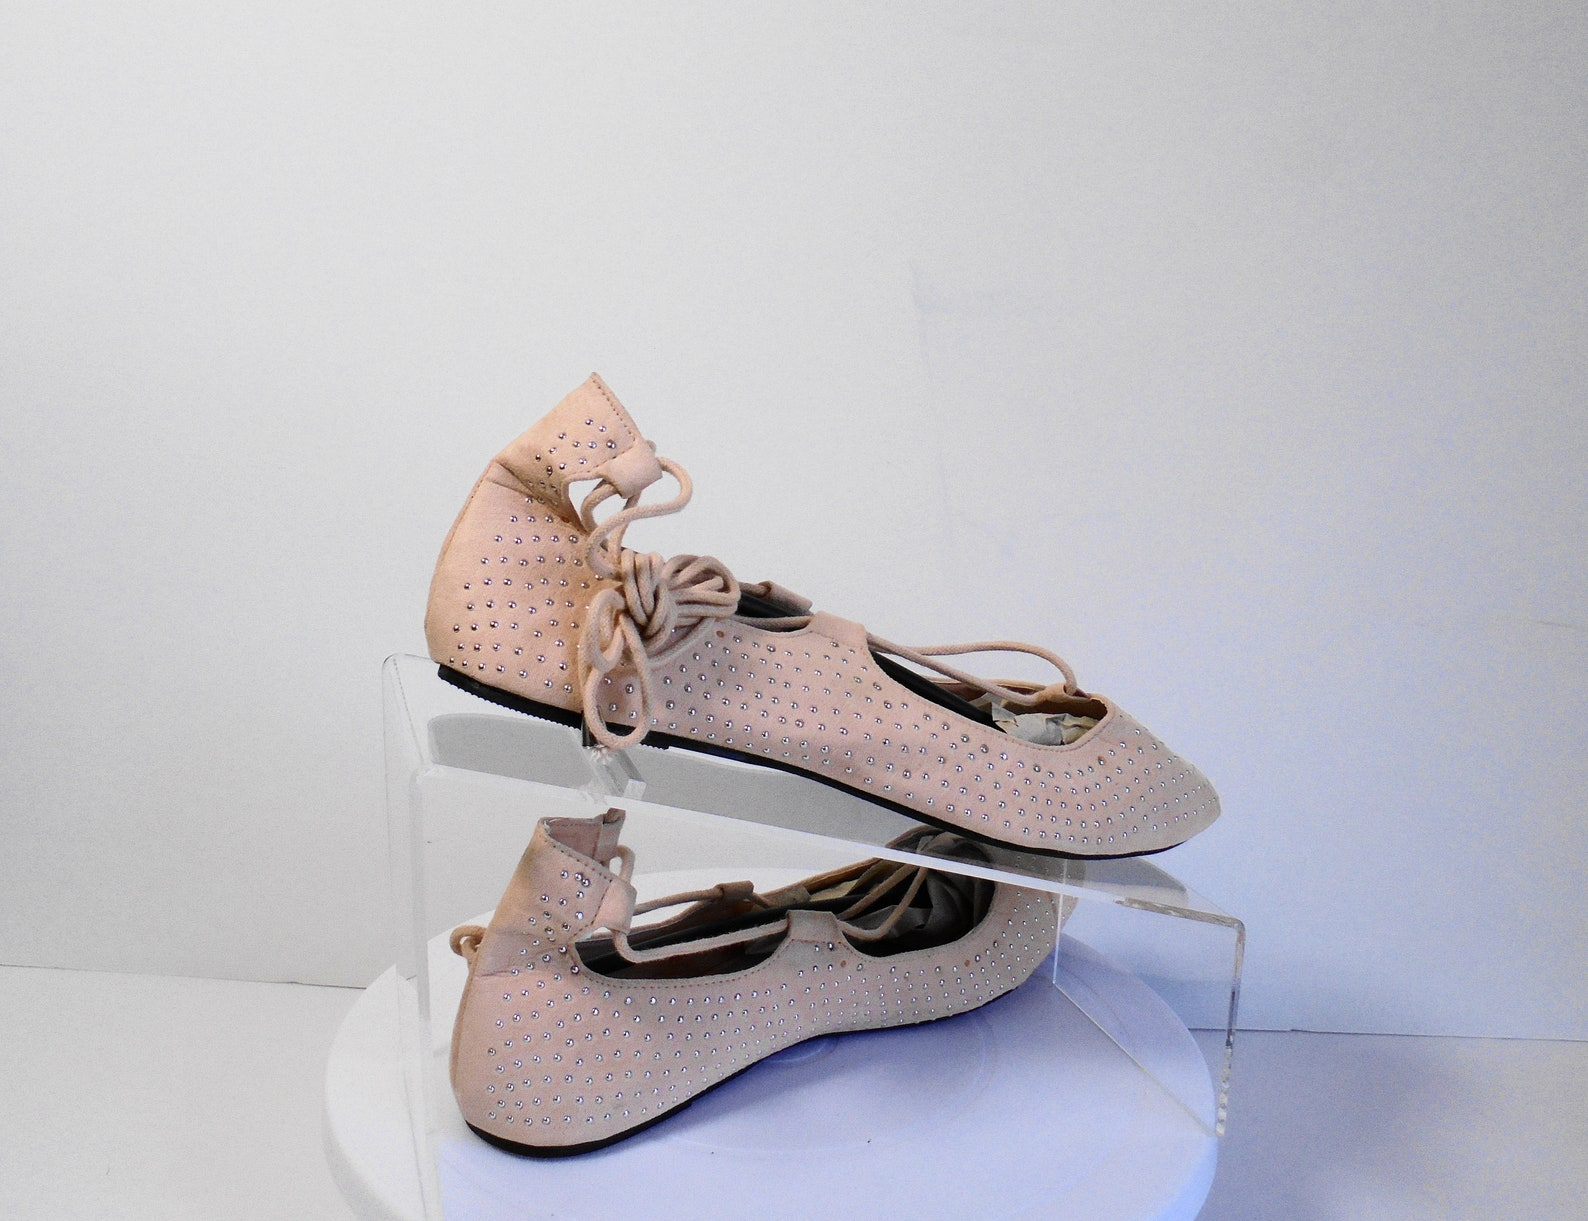 sociology, cute pink with tiny silver studs ankle tie ballet style flat size 7 1/2